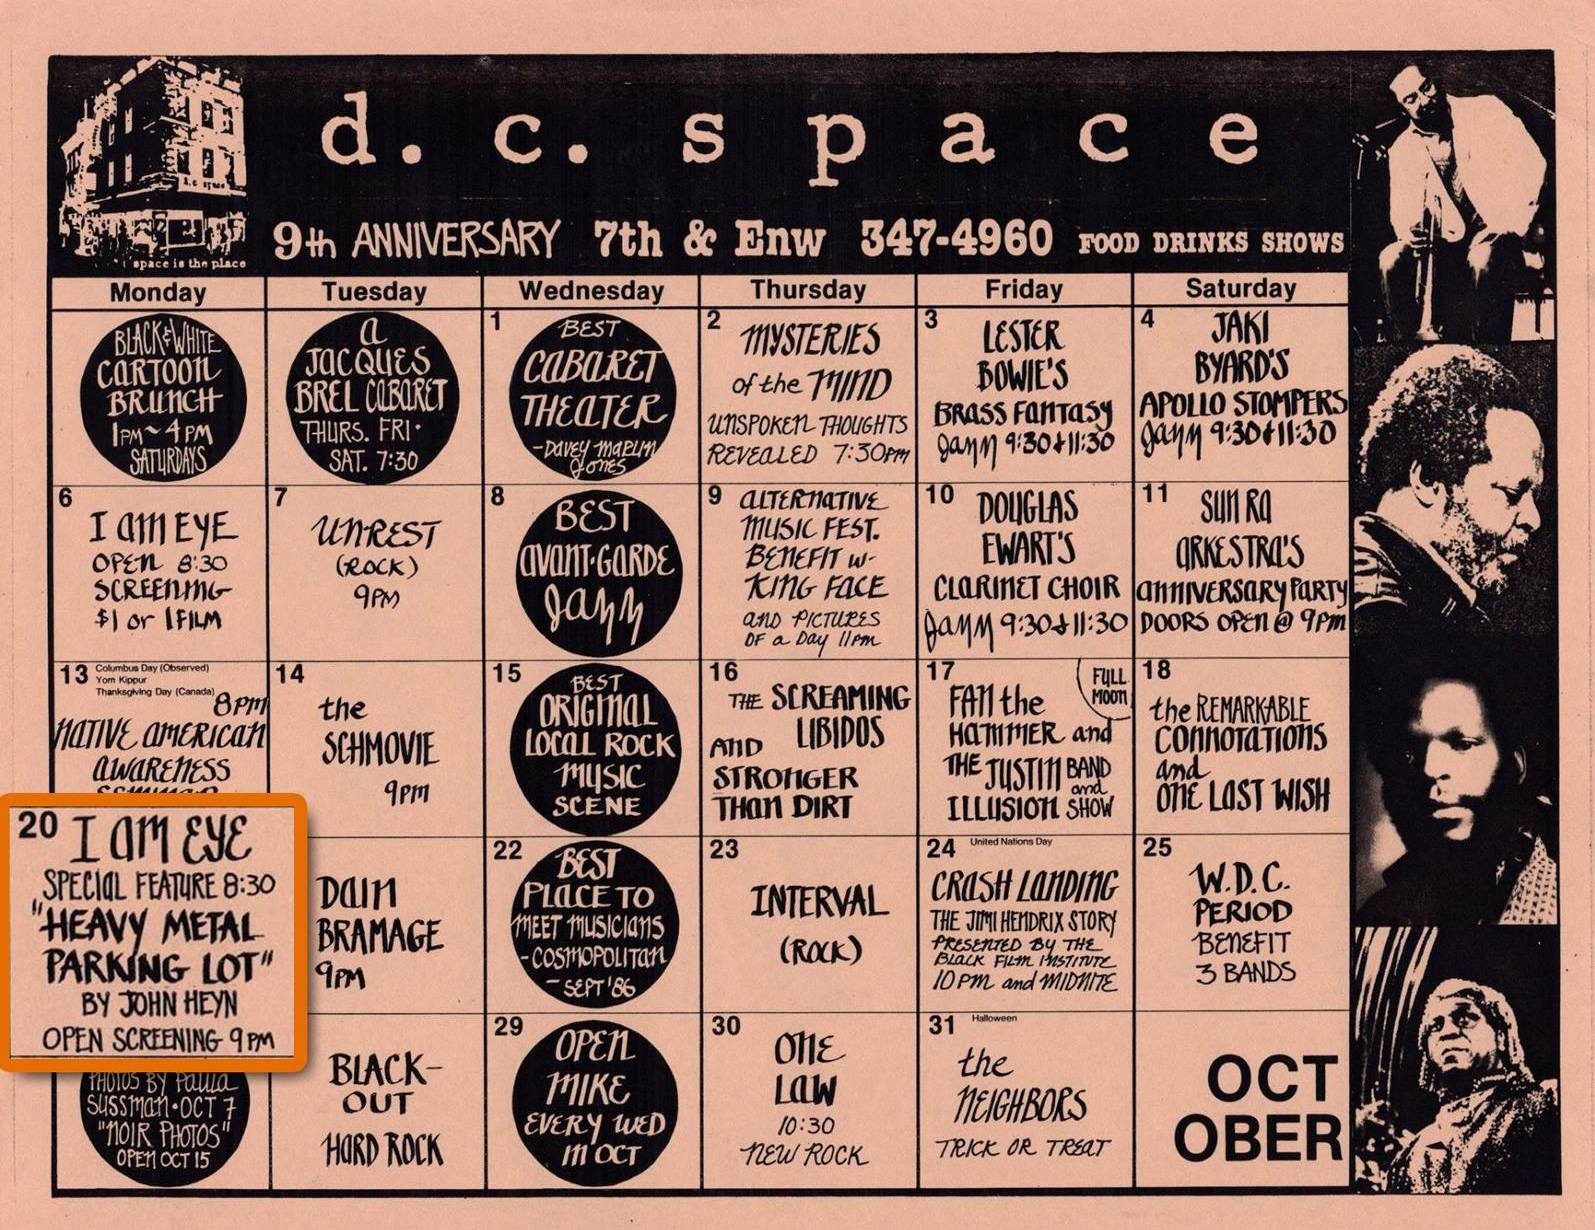 Calendar for October 1986 for d.c. space featuring the world premiere of Heavy Metal Parking Lot